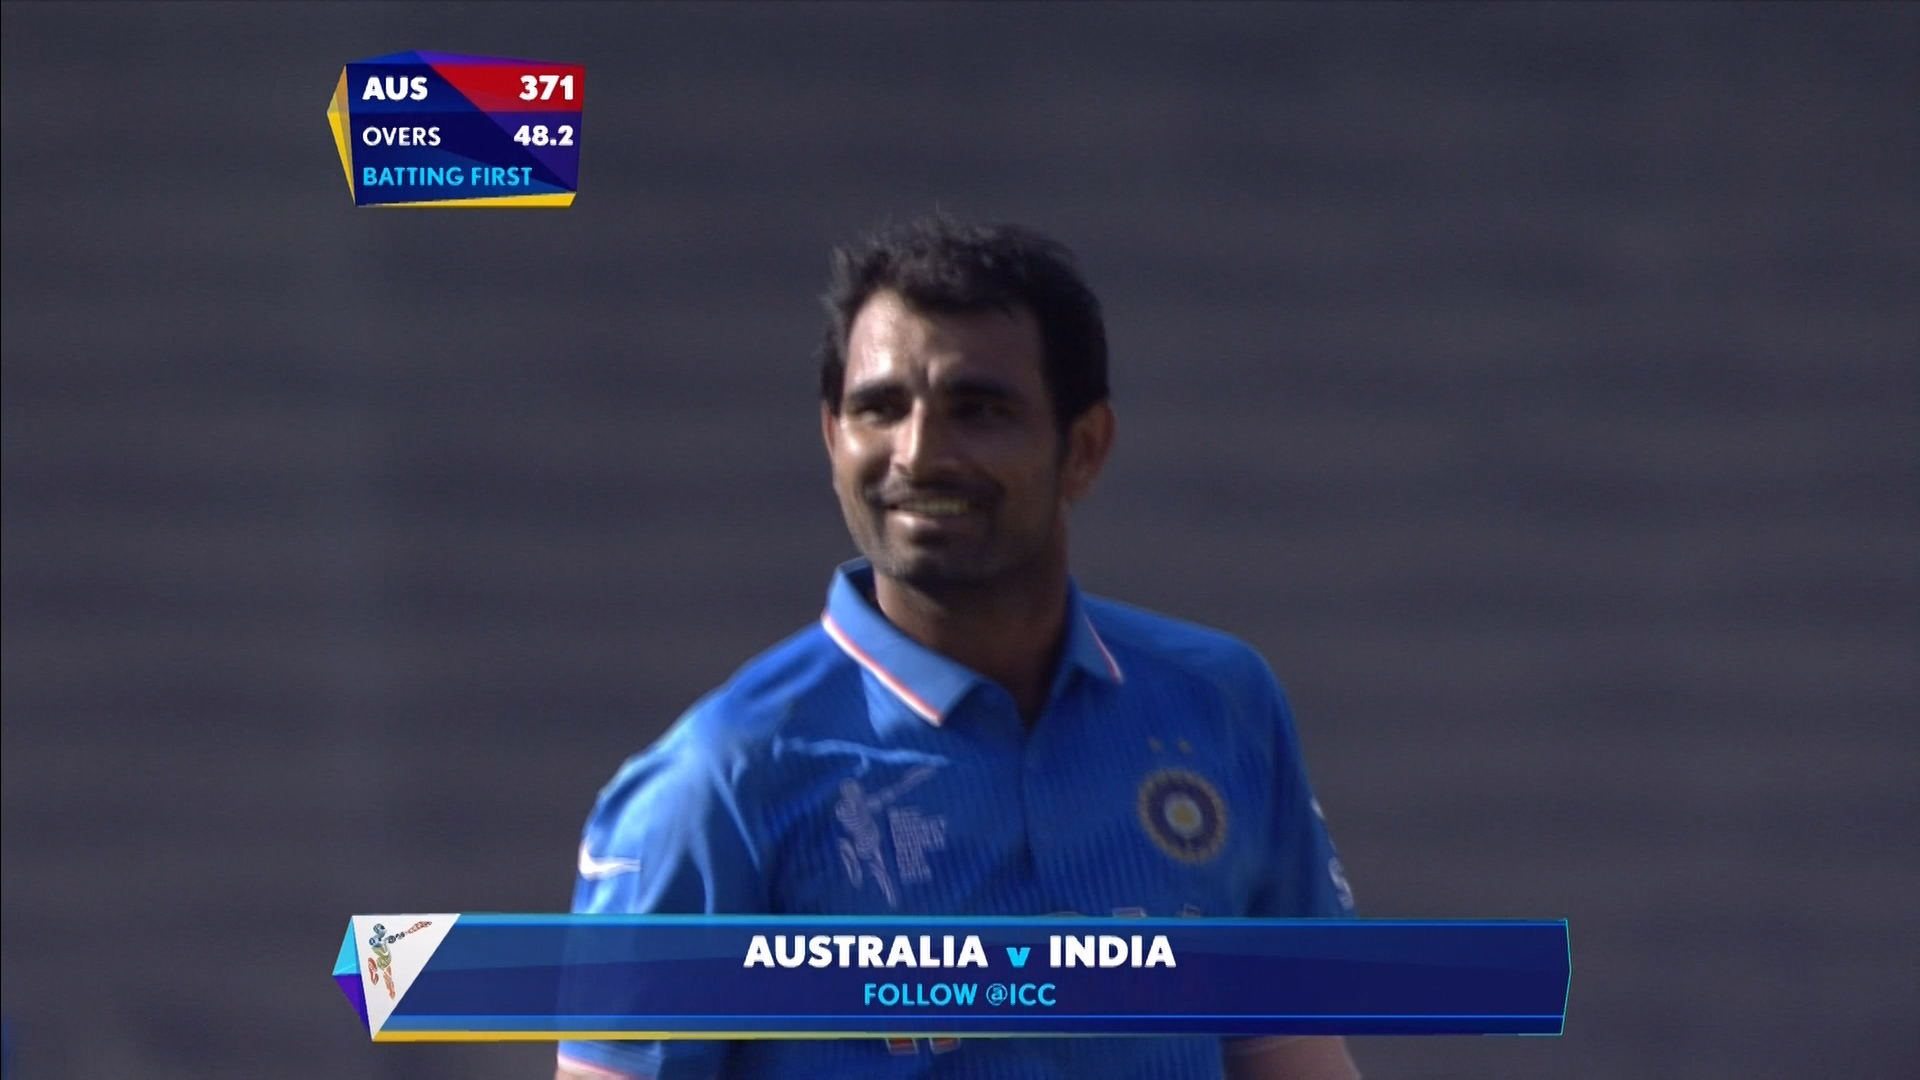 AUS vs IND – shami bowling package